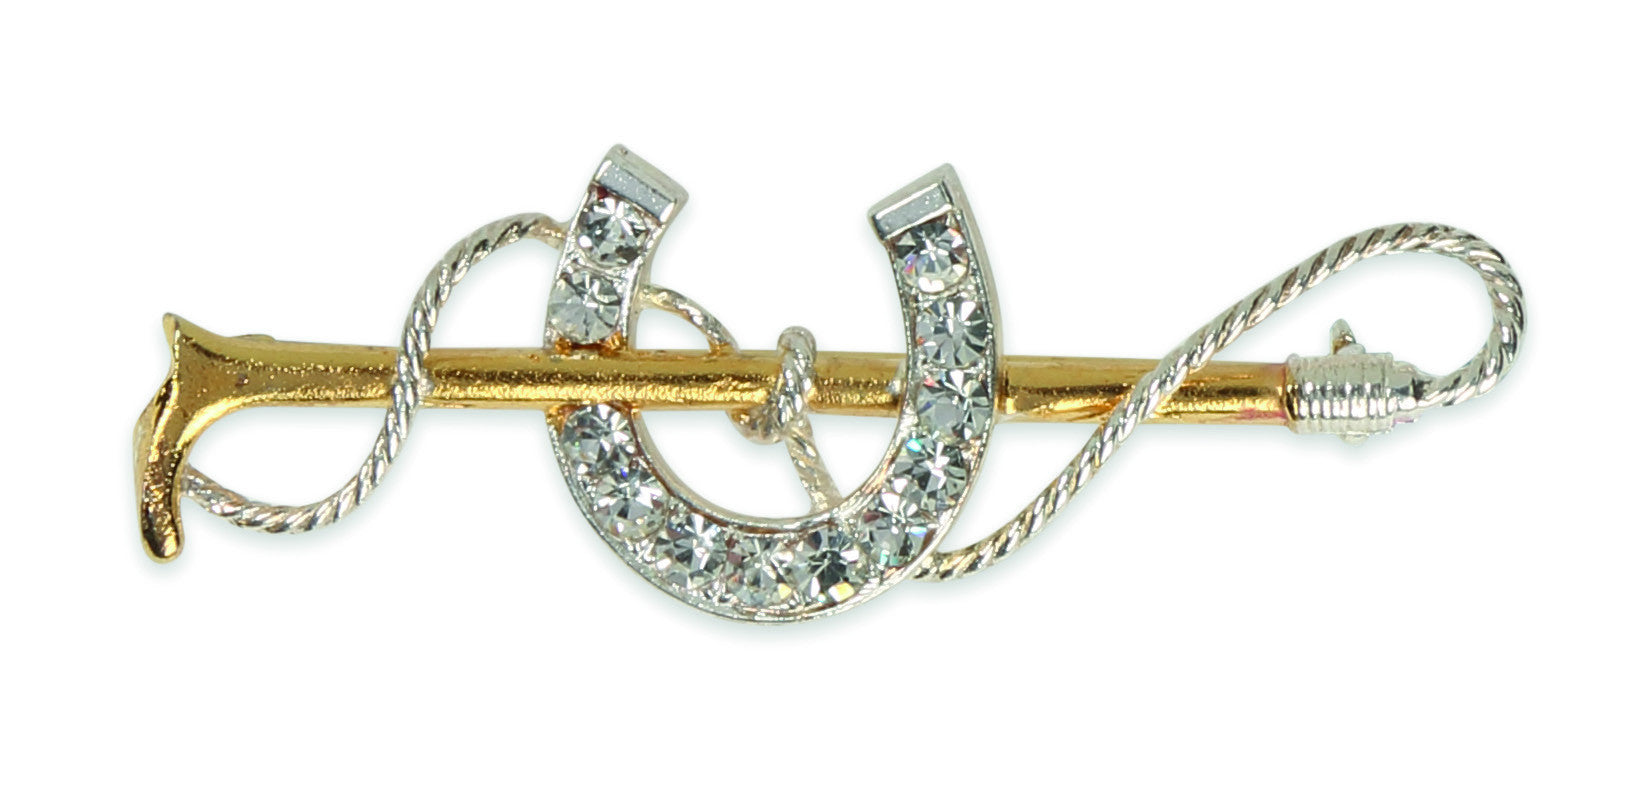 Shires Plated Stock Pin - Gold Crop with Large Diamante Horse Shoe